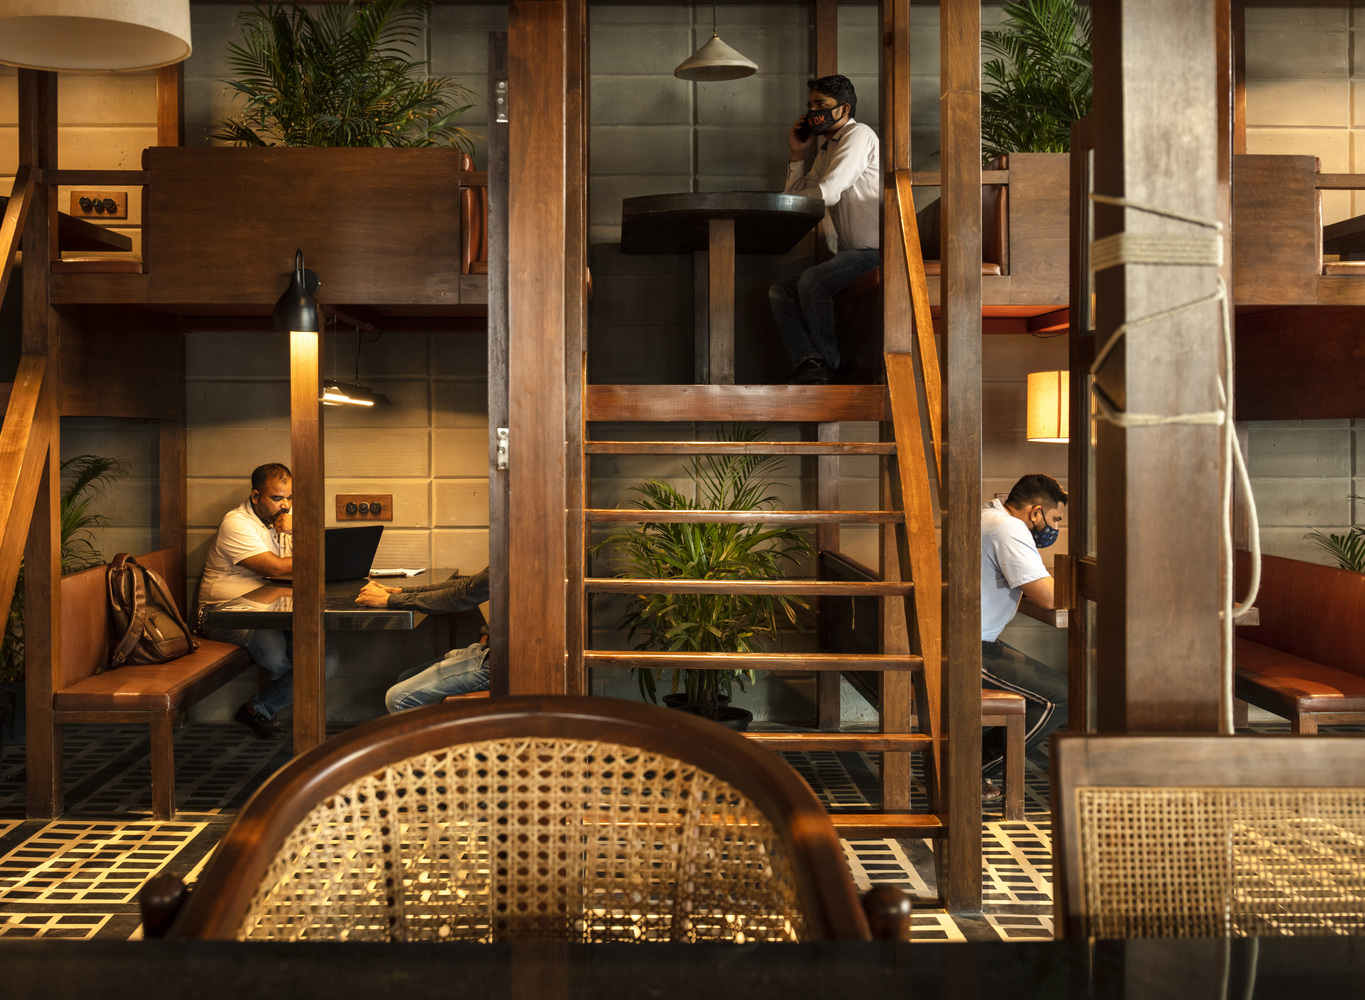 India's first Covid-responsive restaurant has social distancing built-in